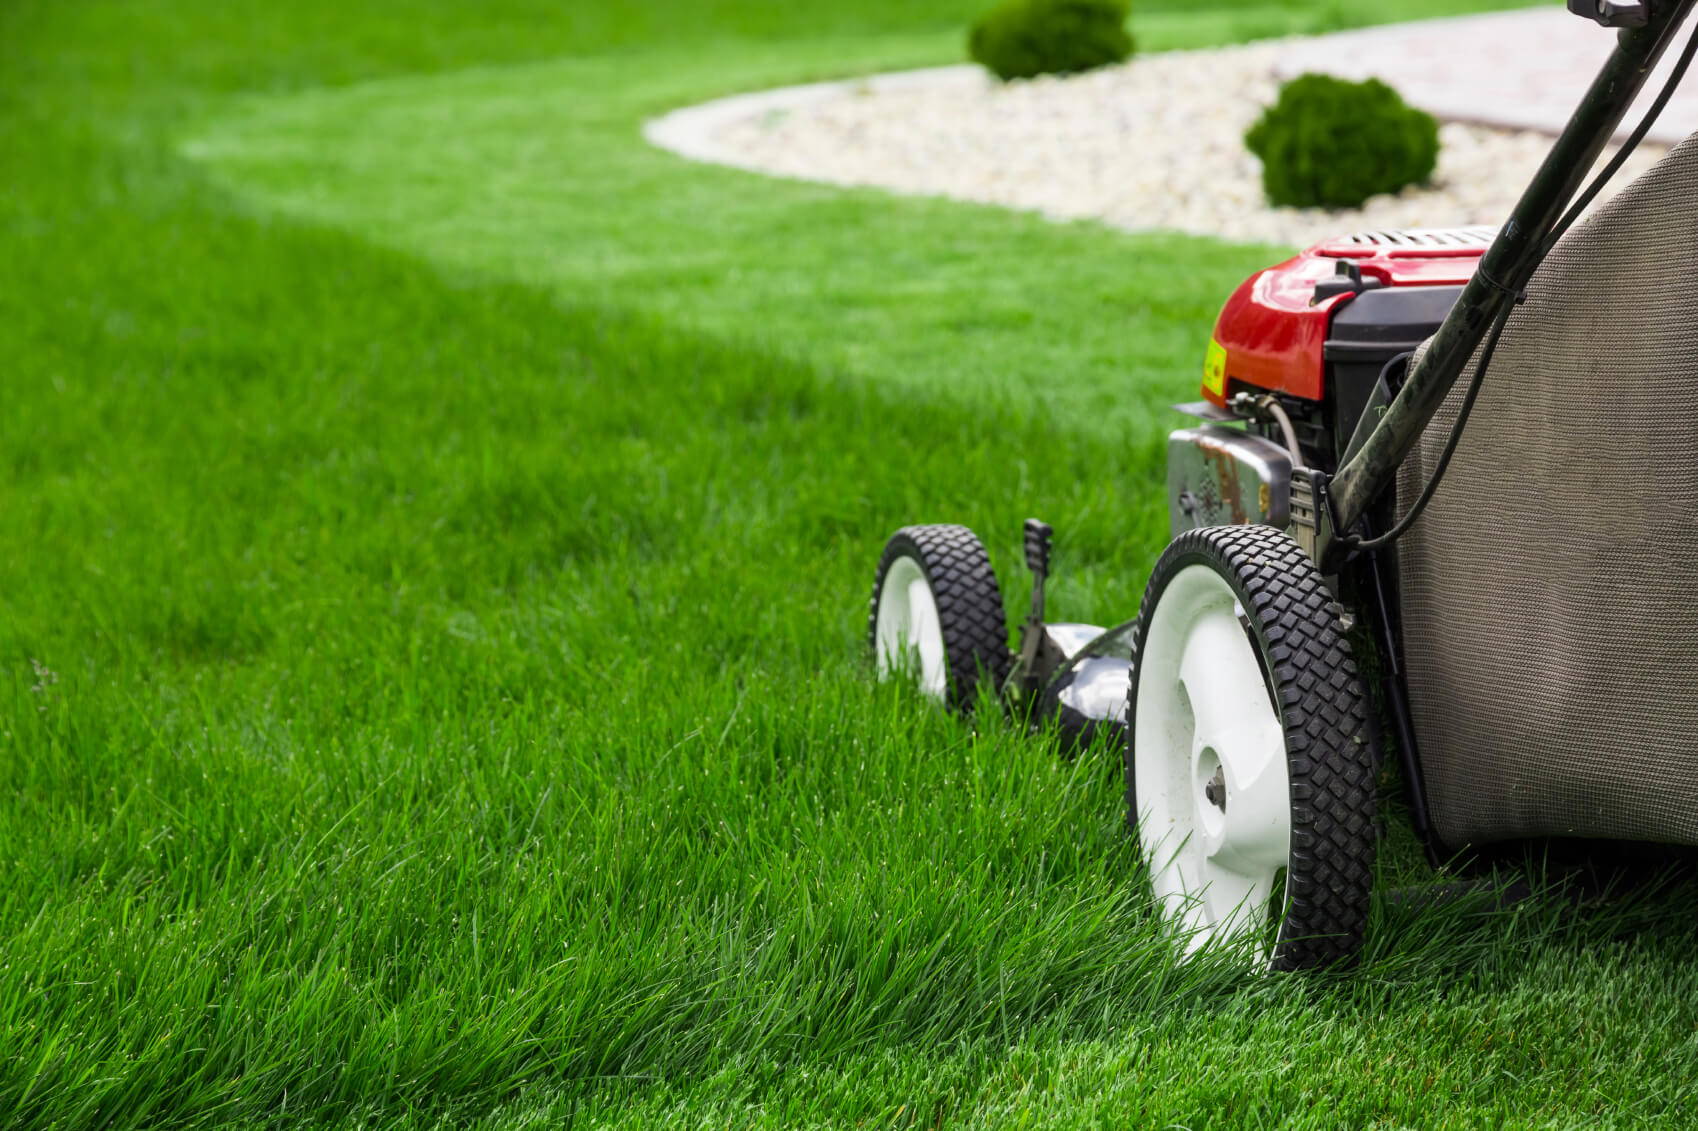 Triple R Landscaping has lawn maintenance services for every size yard